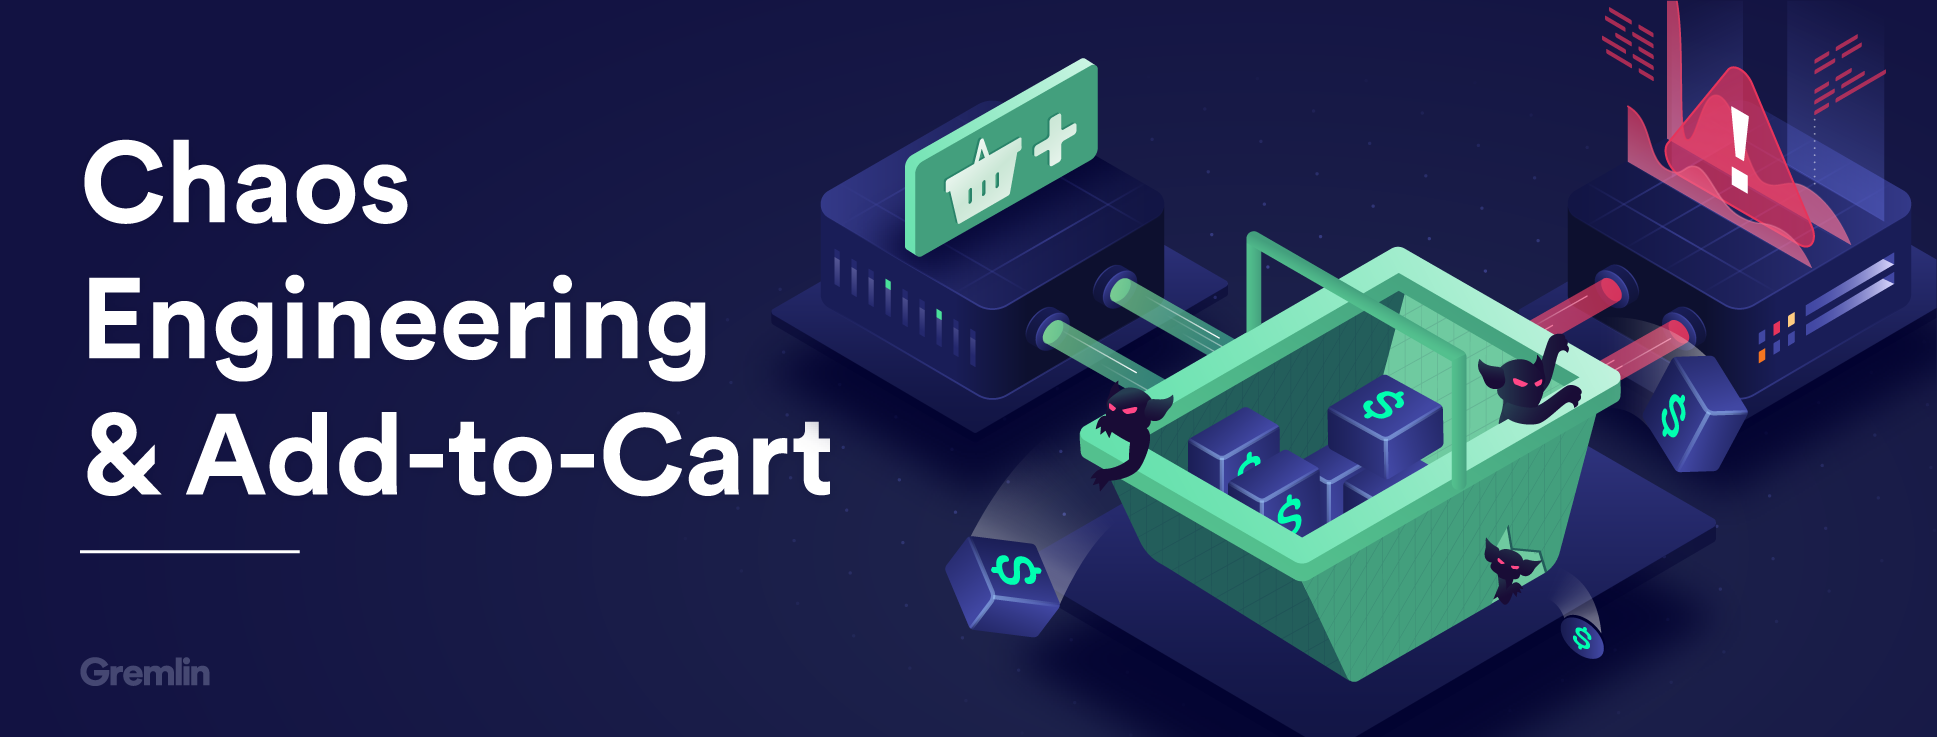 Chaos Engineering and Add-To-Cart